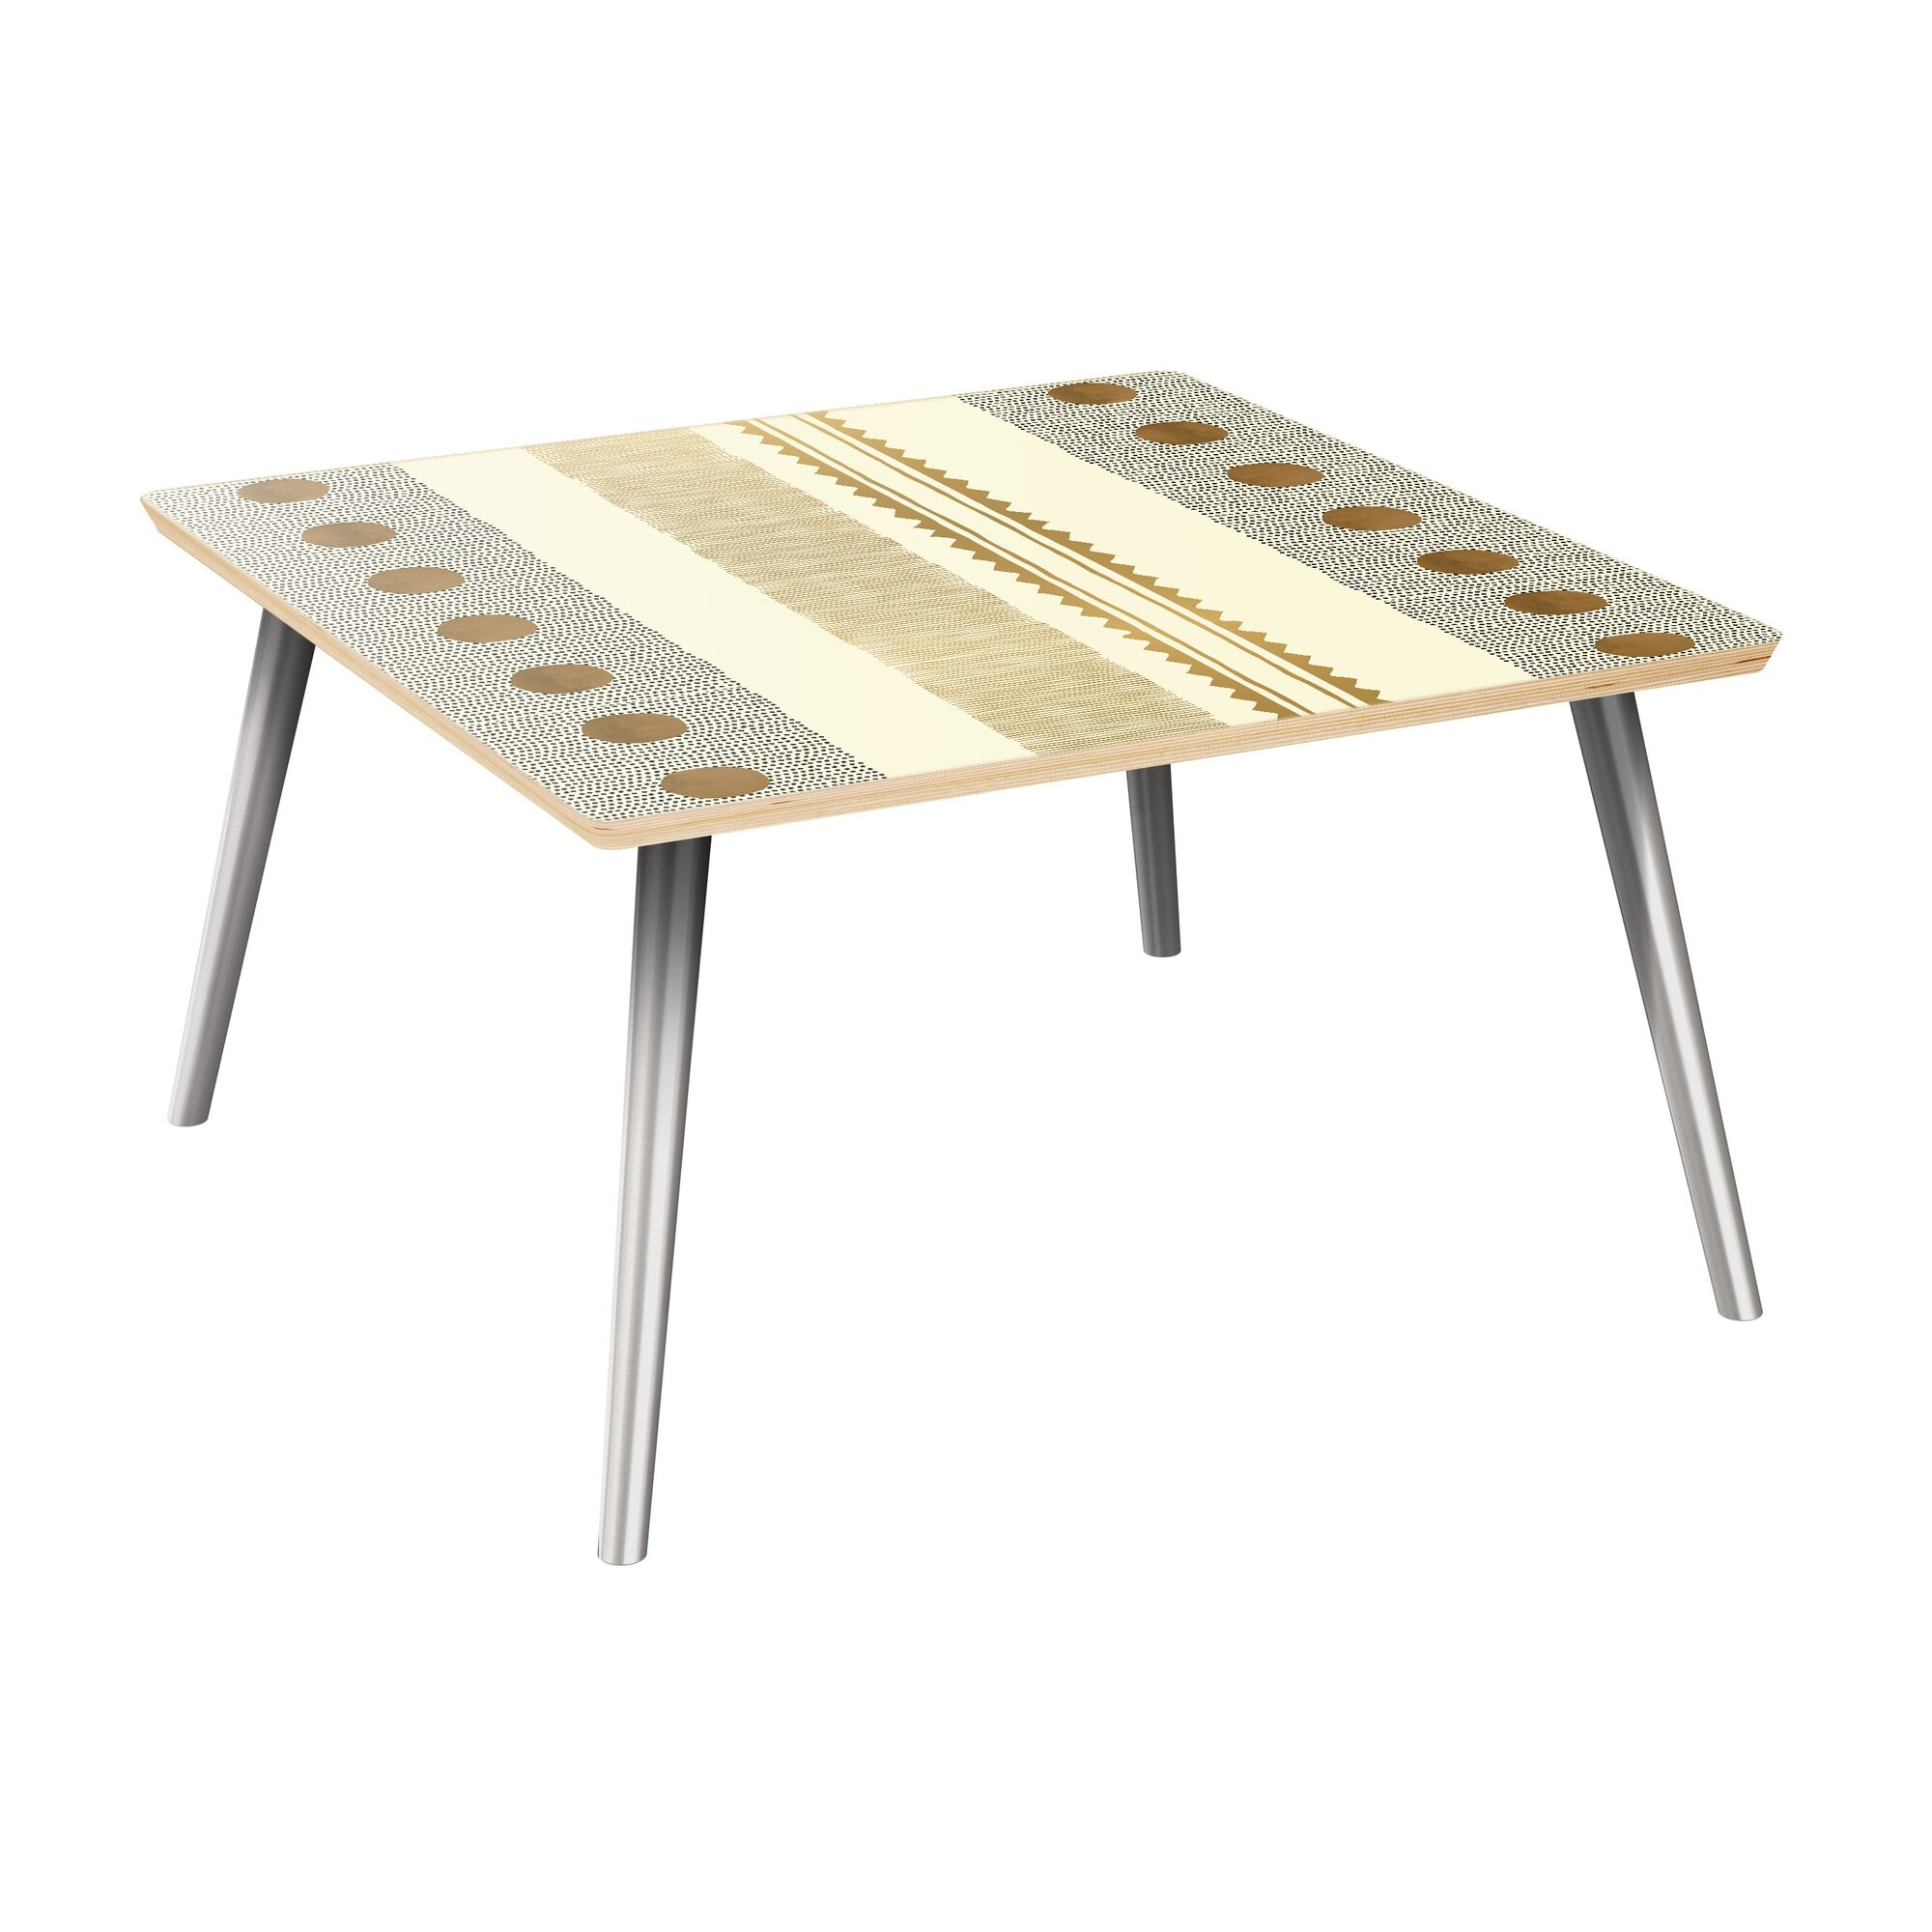 Hudkins Coffee Table Table Top Color: Natural, Table Base Color: Chrome